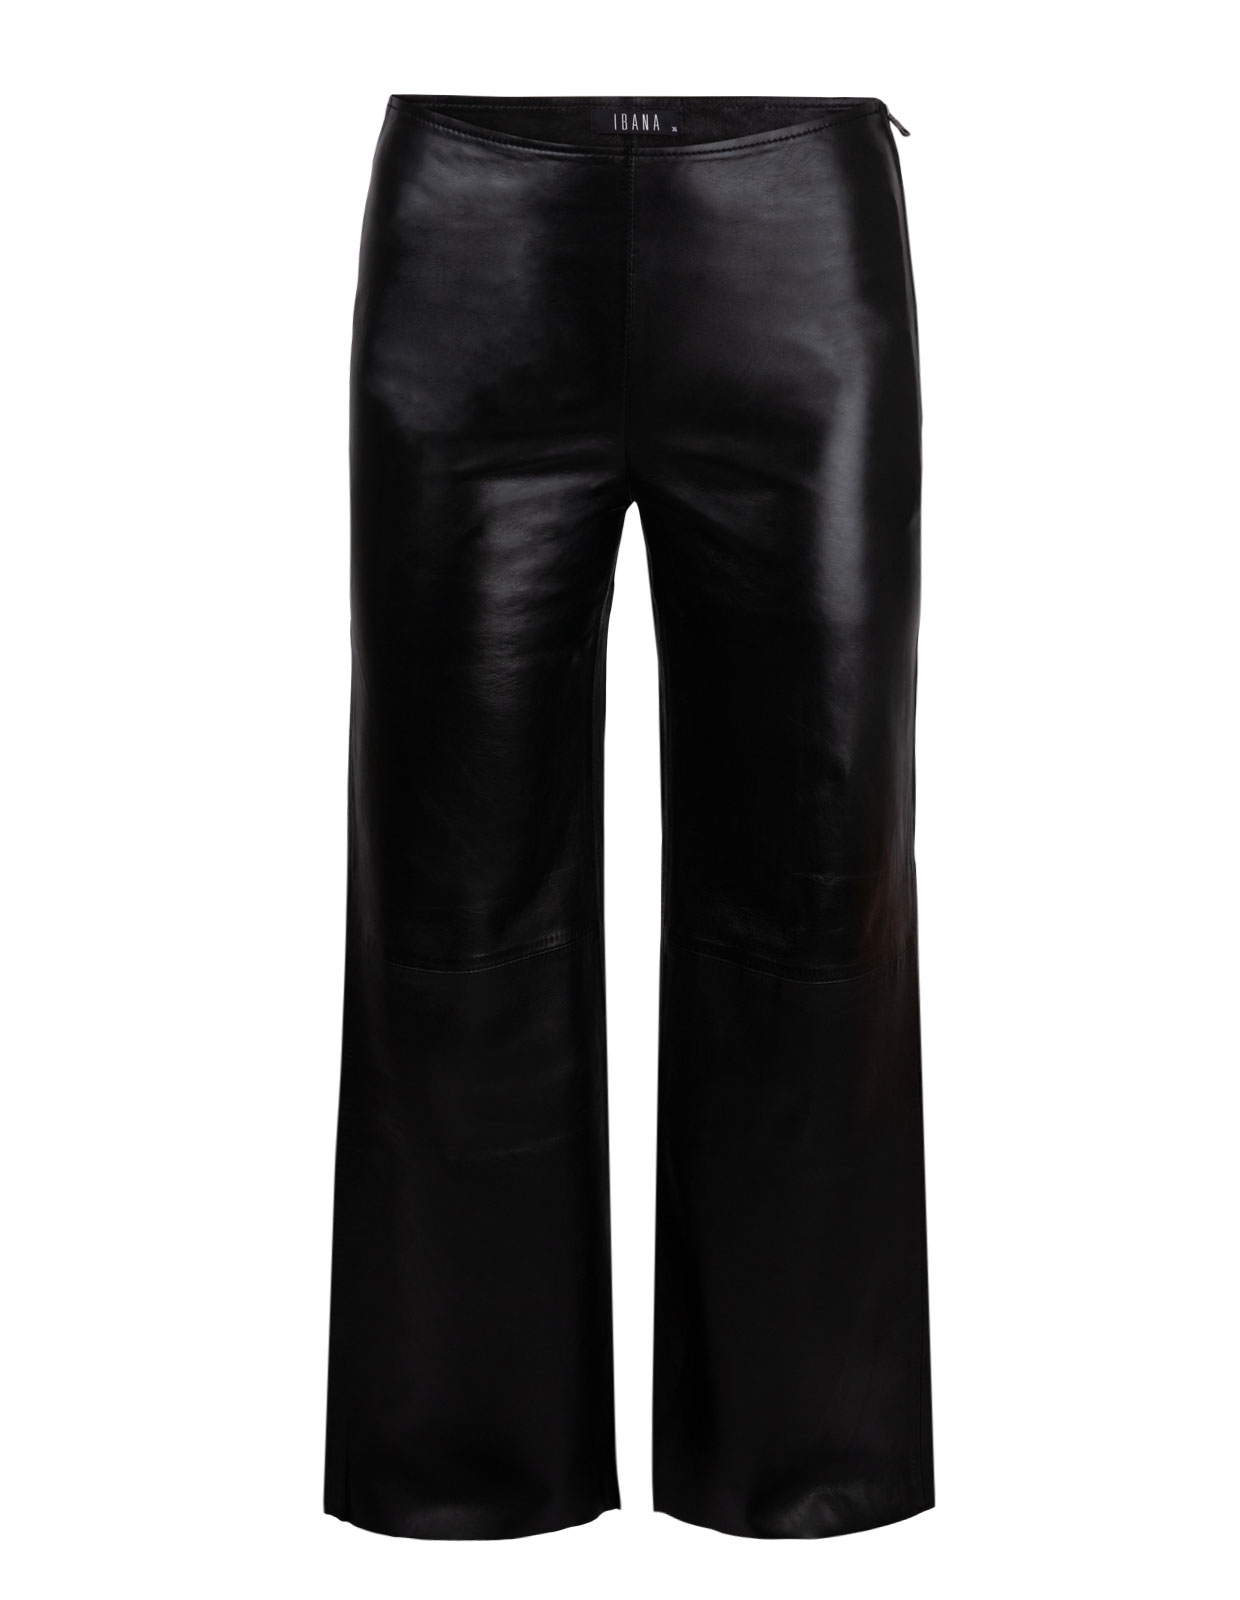 Pagan pants Black